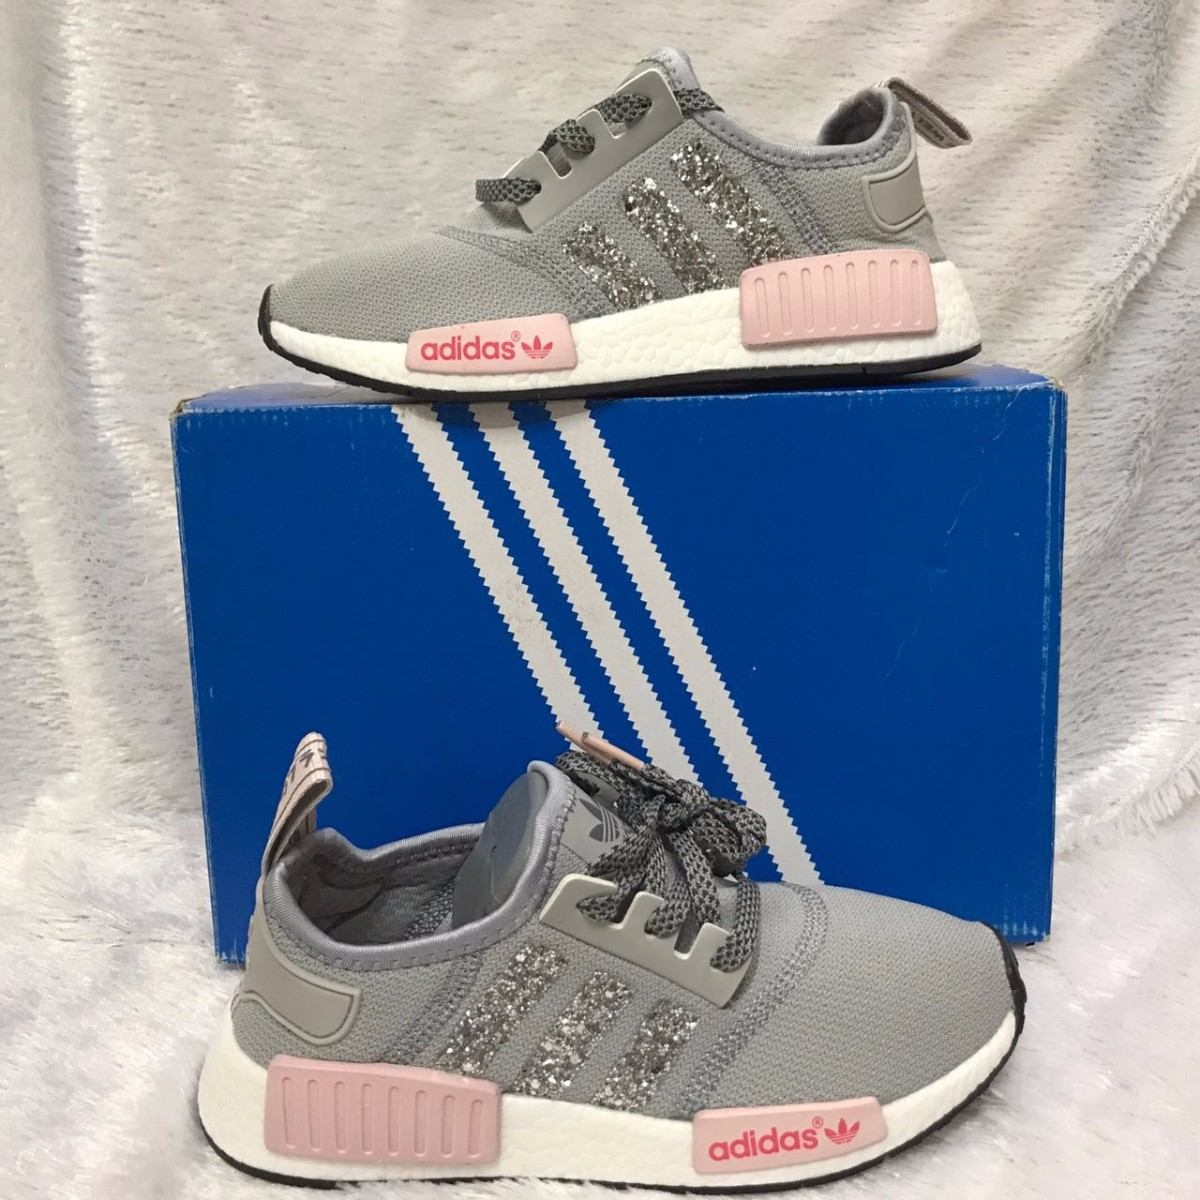 adidas nmd mujer rosas y grises